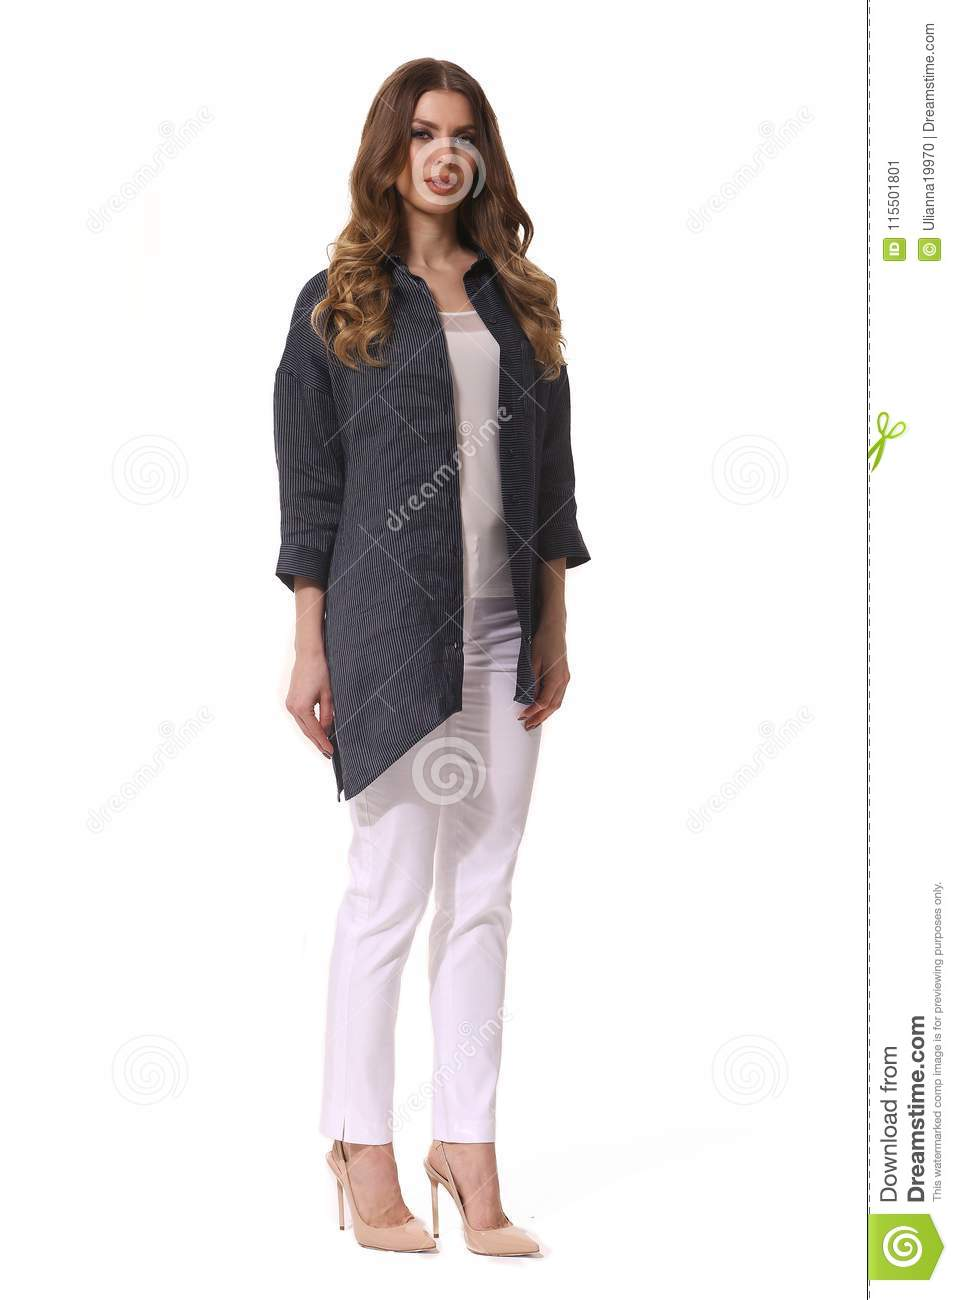 Business Woman Executive Posing In Designer Formal Summer Pink Powder Pant Suit Stock Image Image Of Hand Fashion 115501801